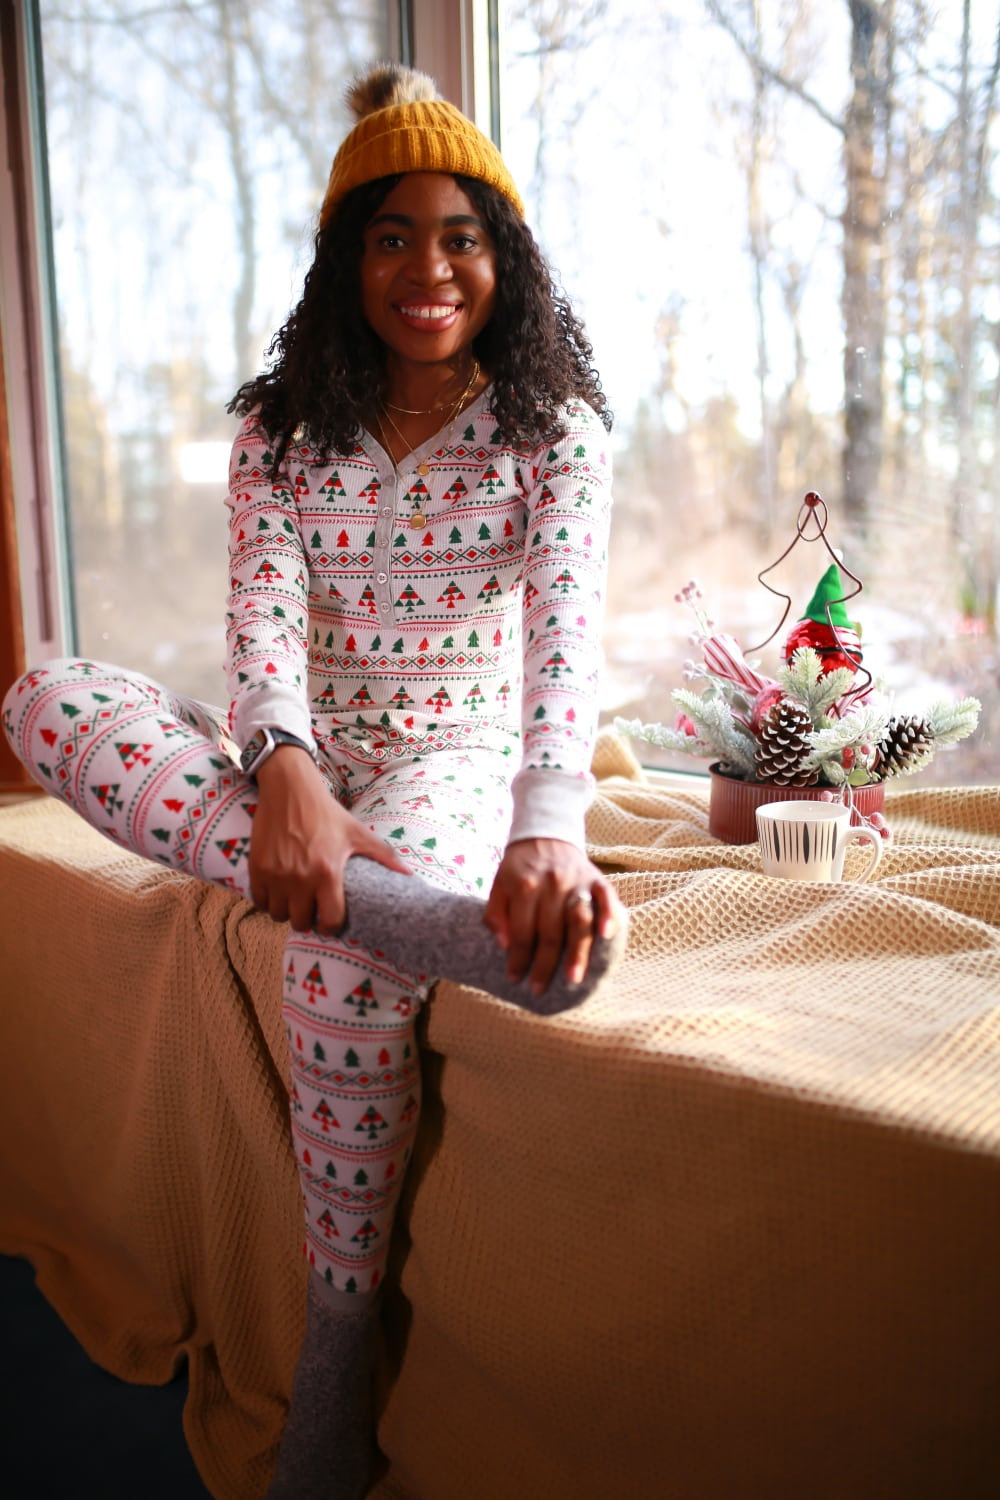 Amazing last minute Nordstrom gifts for her (women, wife, partner, grannies, and daughters) this year. From top-rated BlankNYC moto jackets, cozy socks, and pampering facial mask to stunning and affordable jewelry, makeup, and comfy loungewear slippers. #nordstrom #nordstromsale